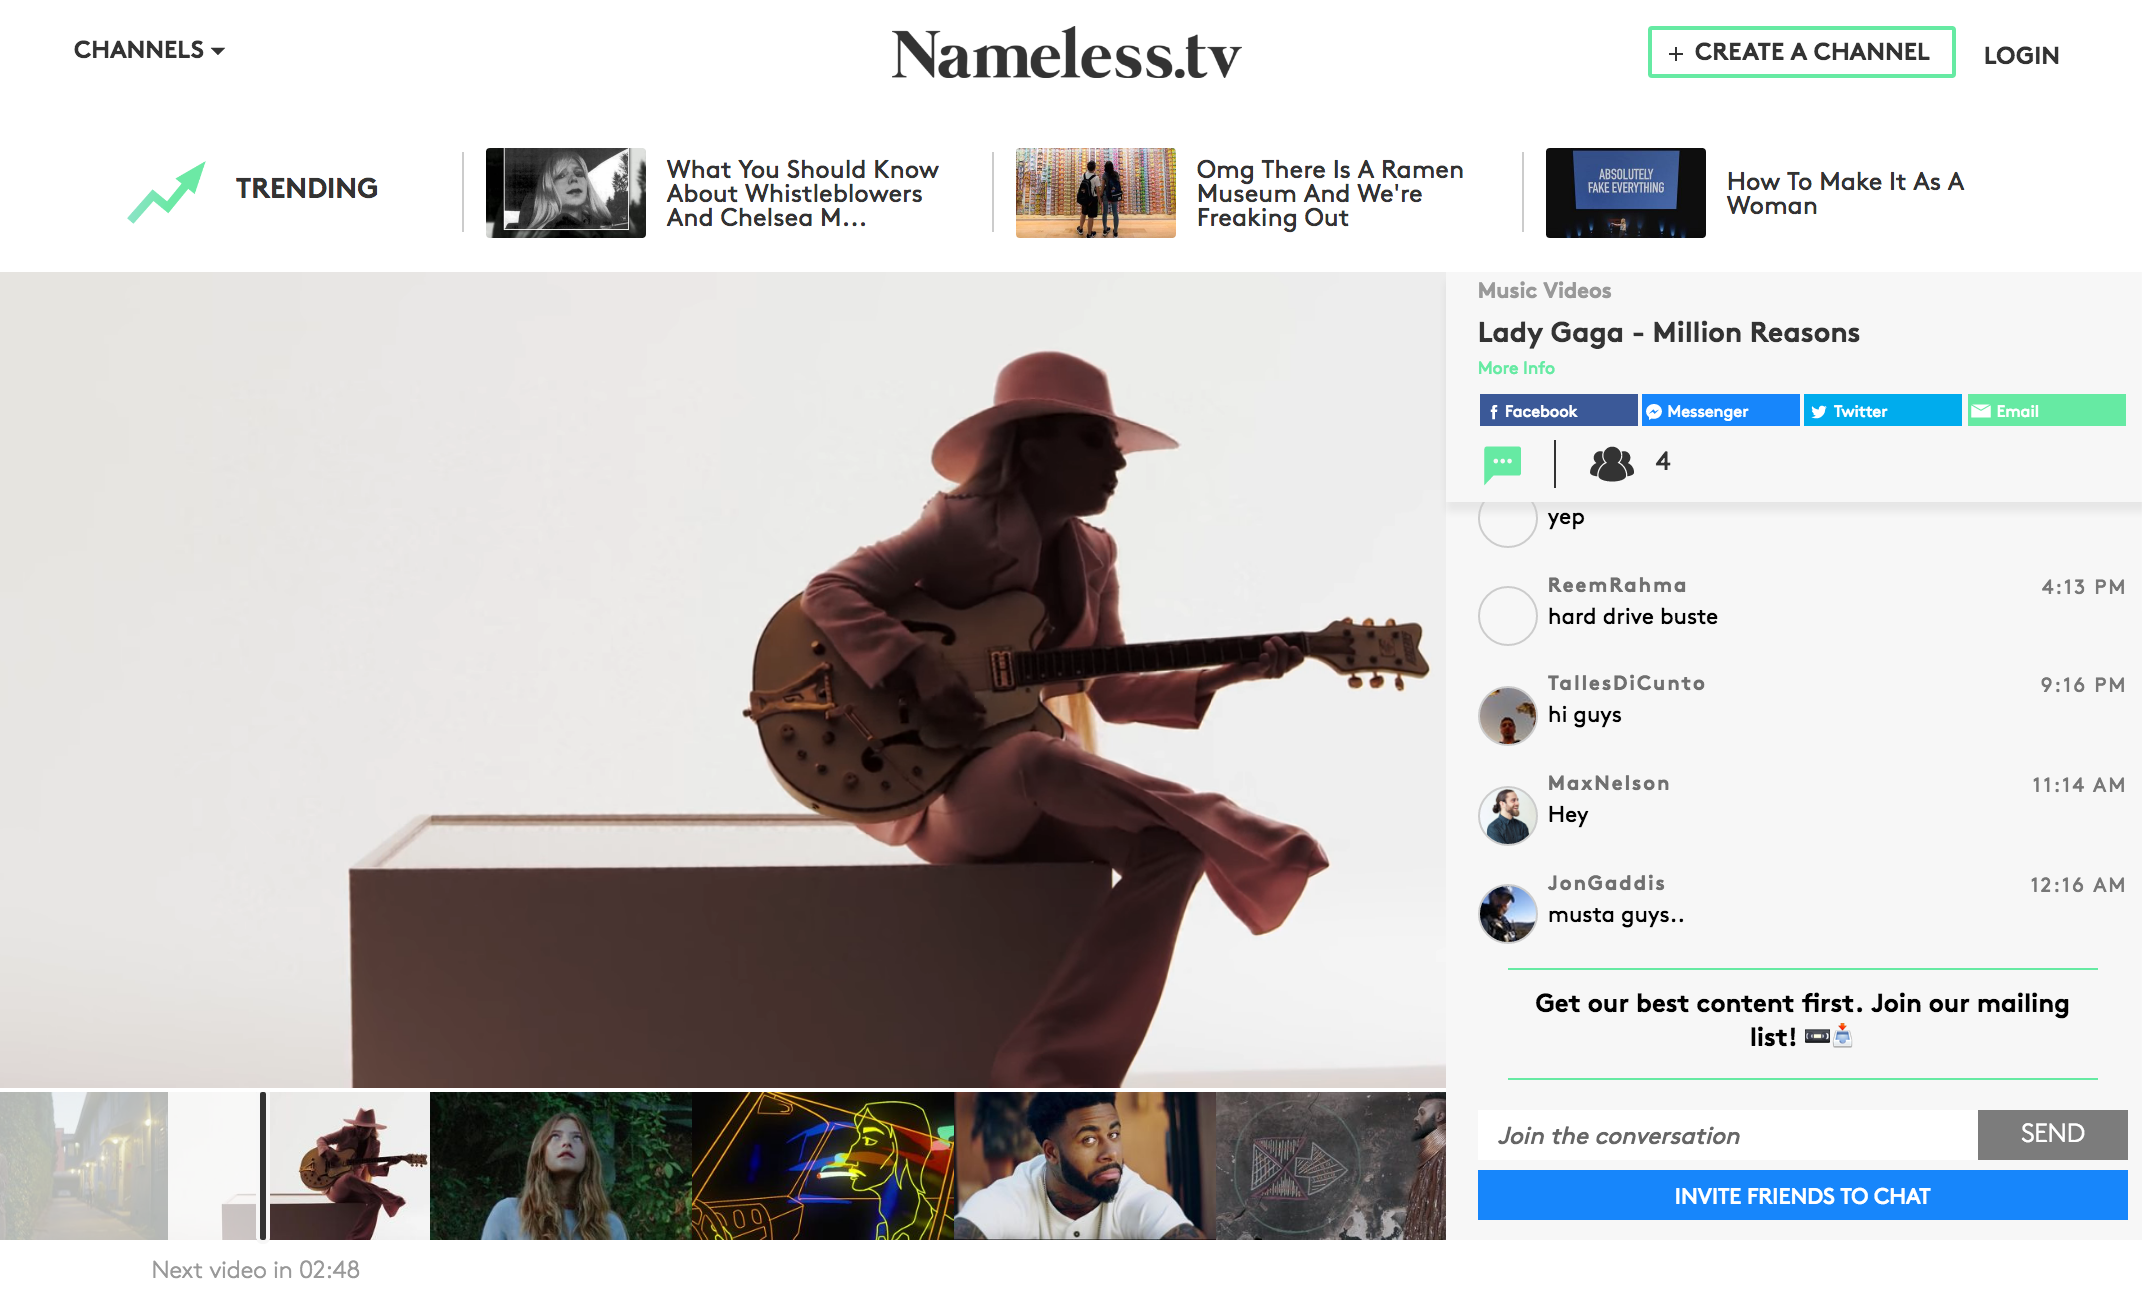 Nameless.tv